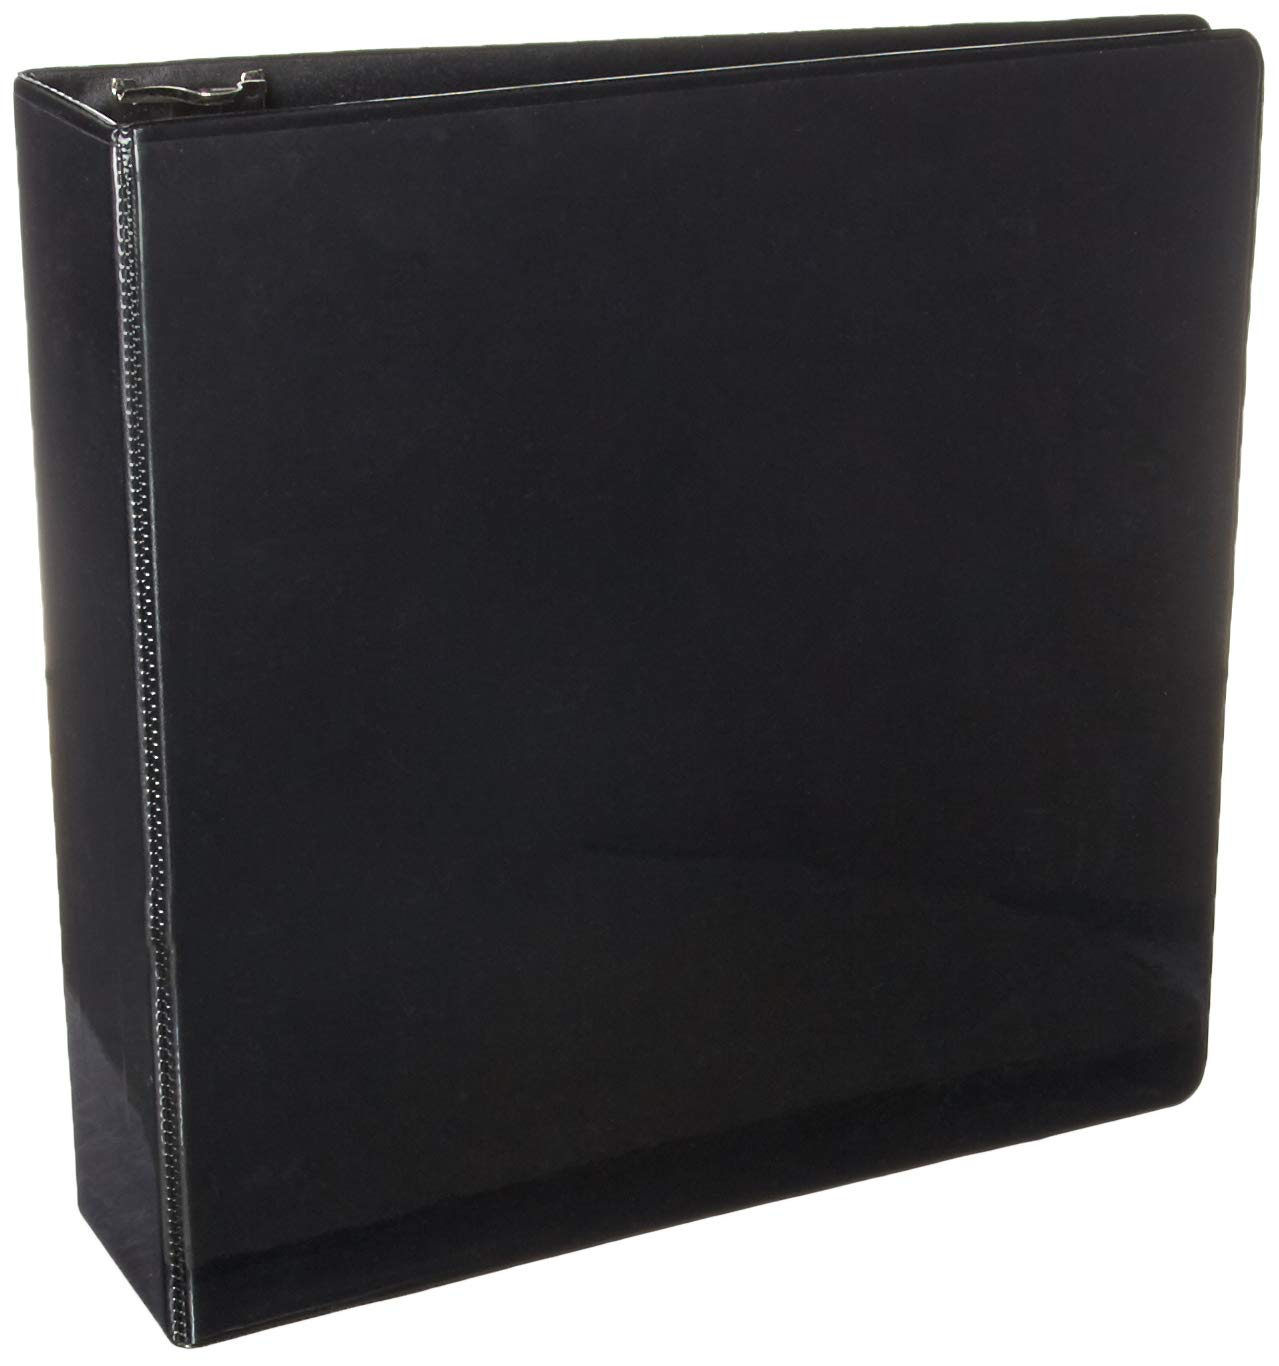 BAZIC 3'' Black Slant-D Ring View Binder w/ 2 Pockets